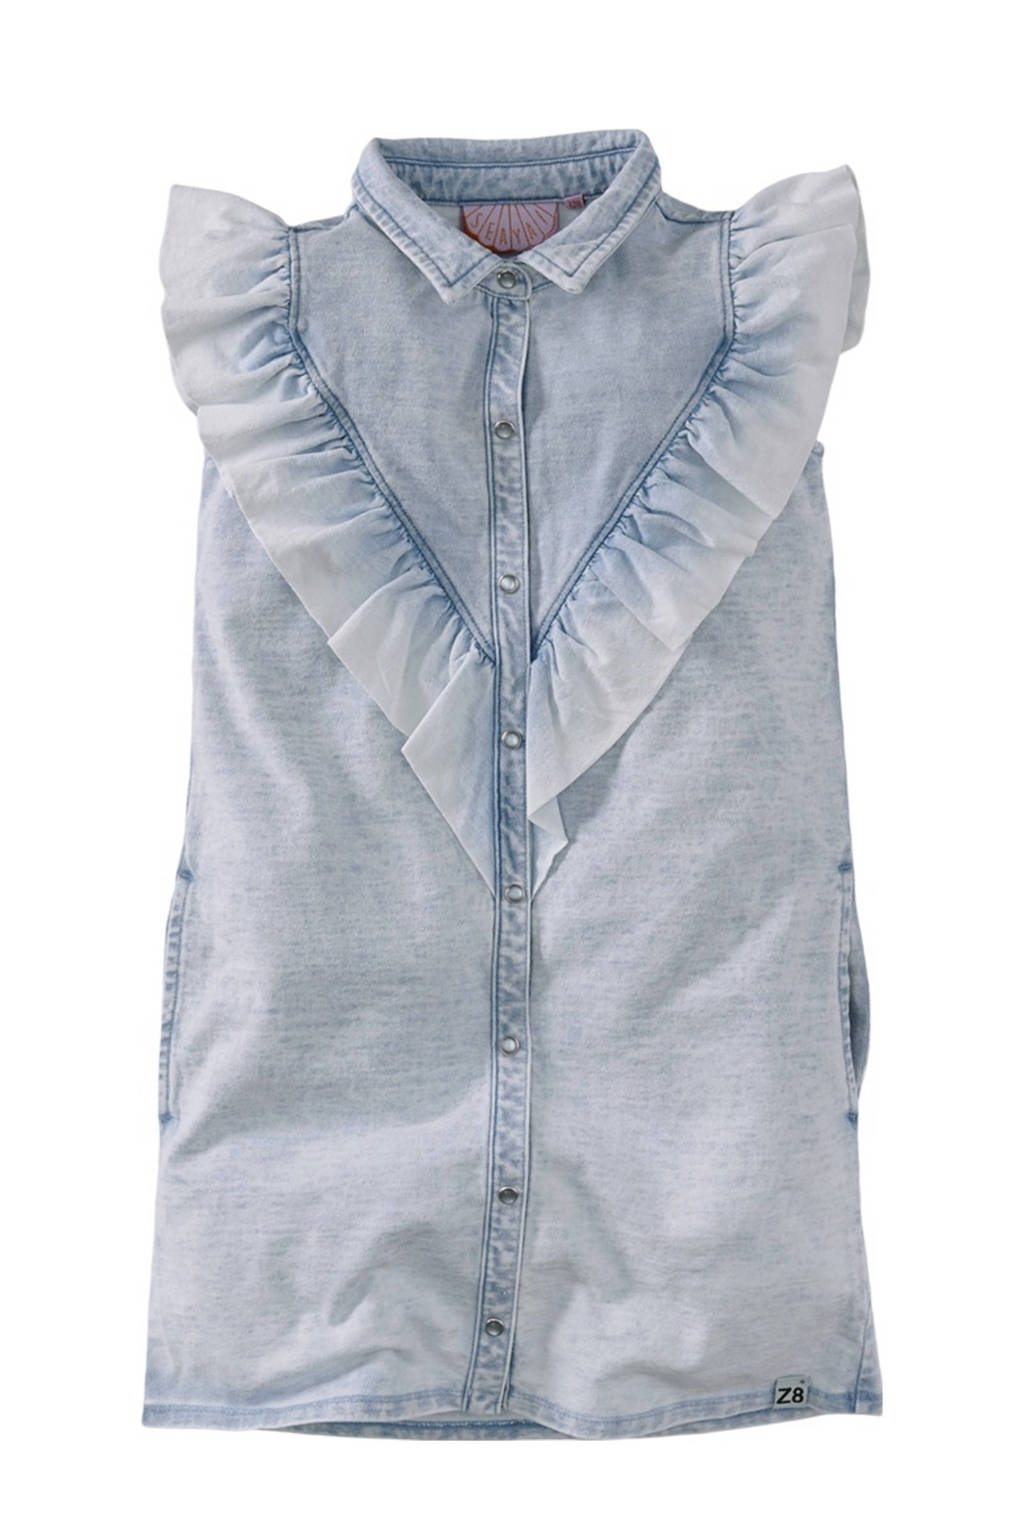 Z8 spijkerjurk Horace light denim, Light denim